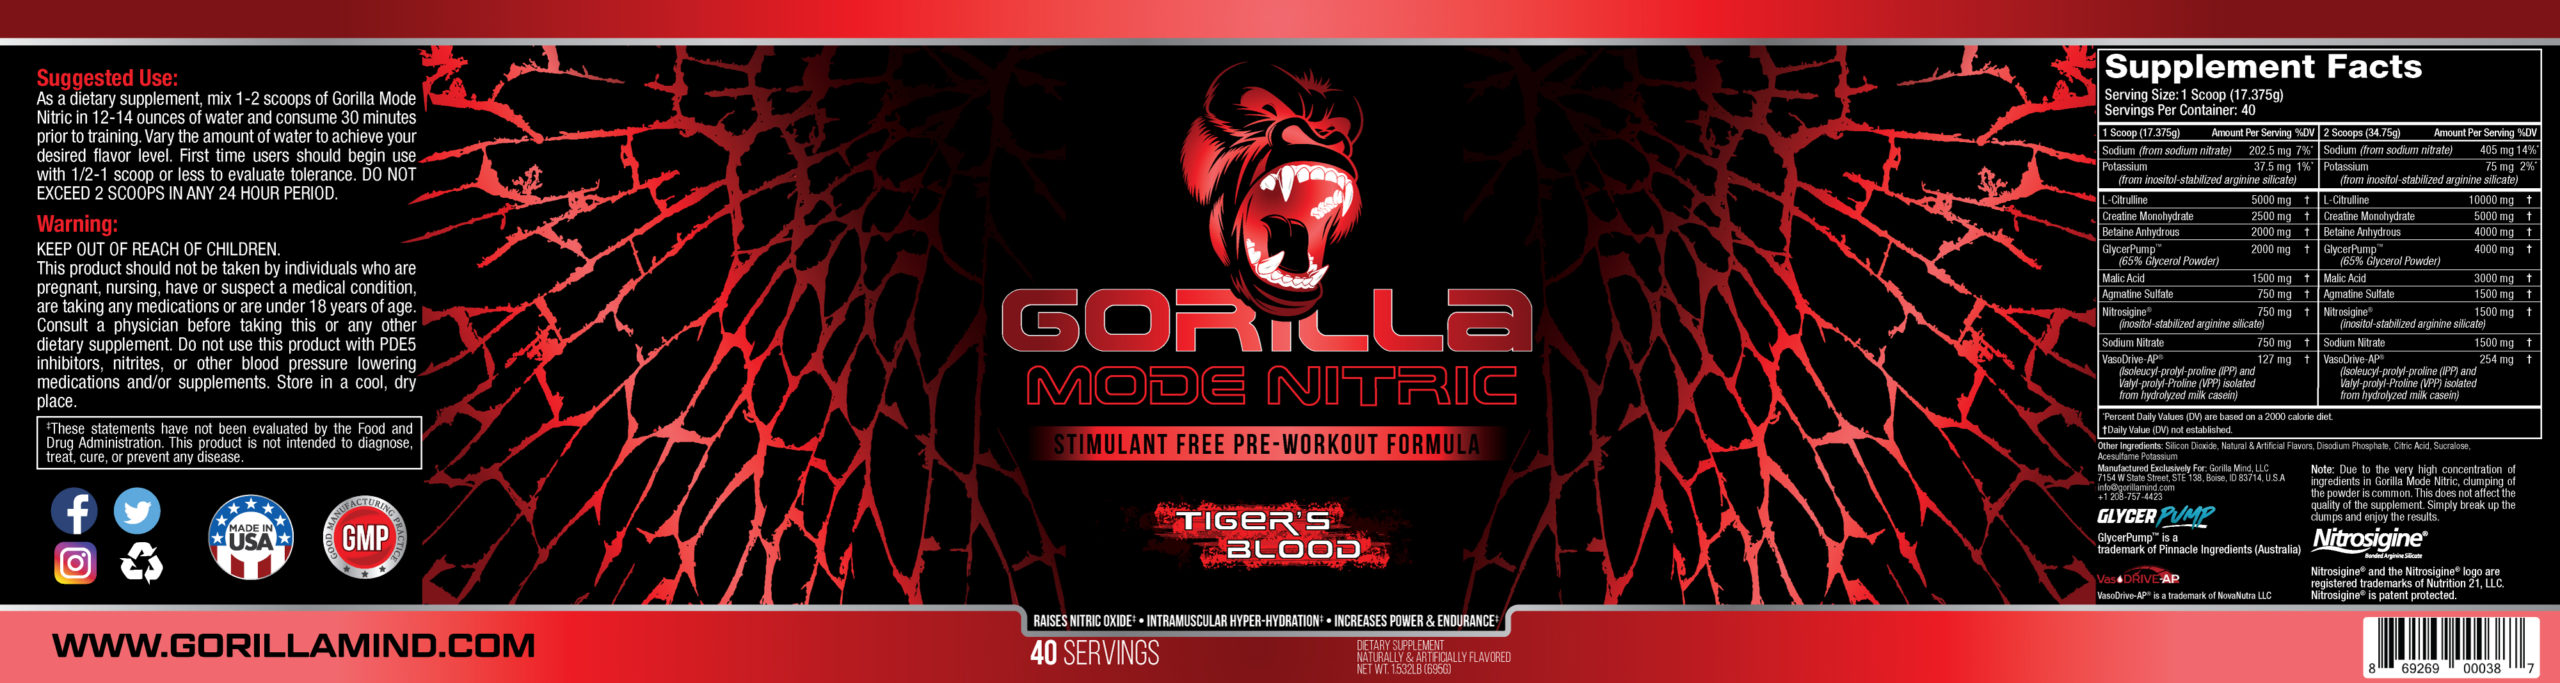 Gorilla Mode Nitric (Tiger's Blood) Label Design